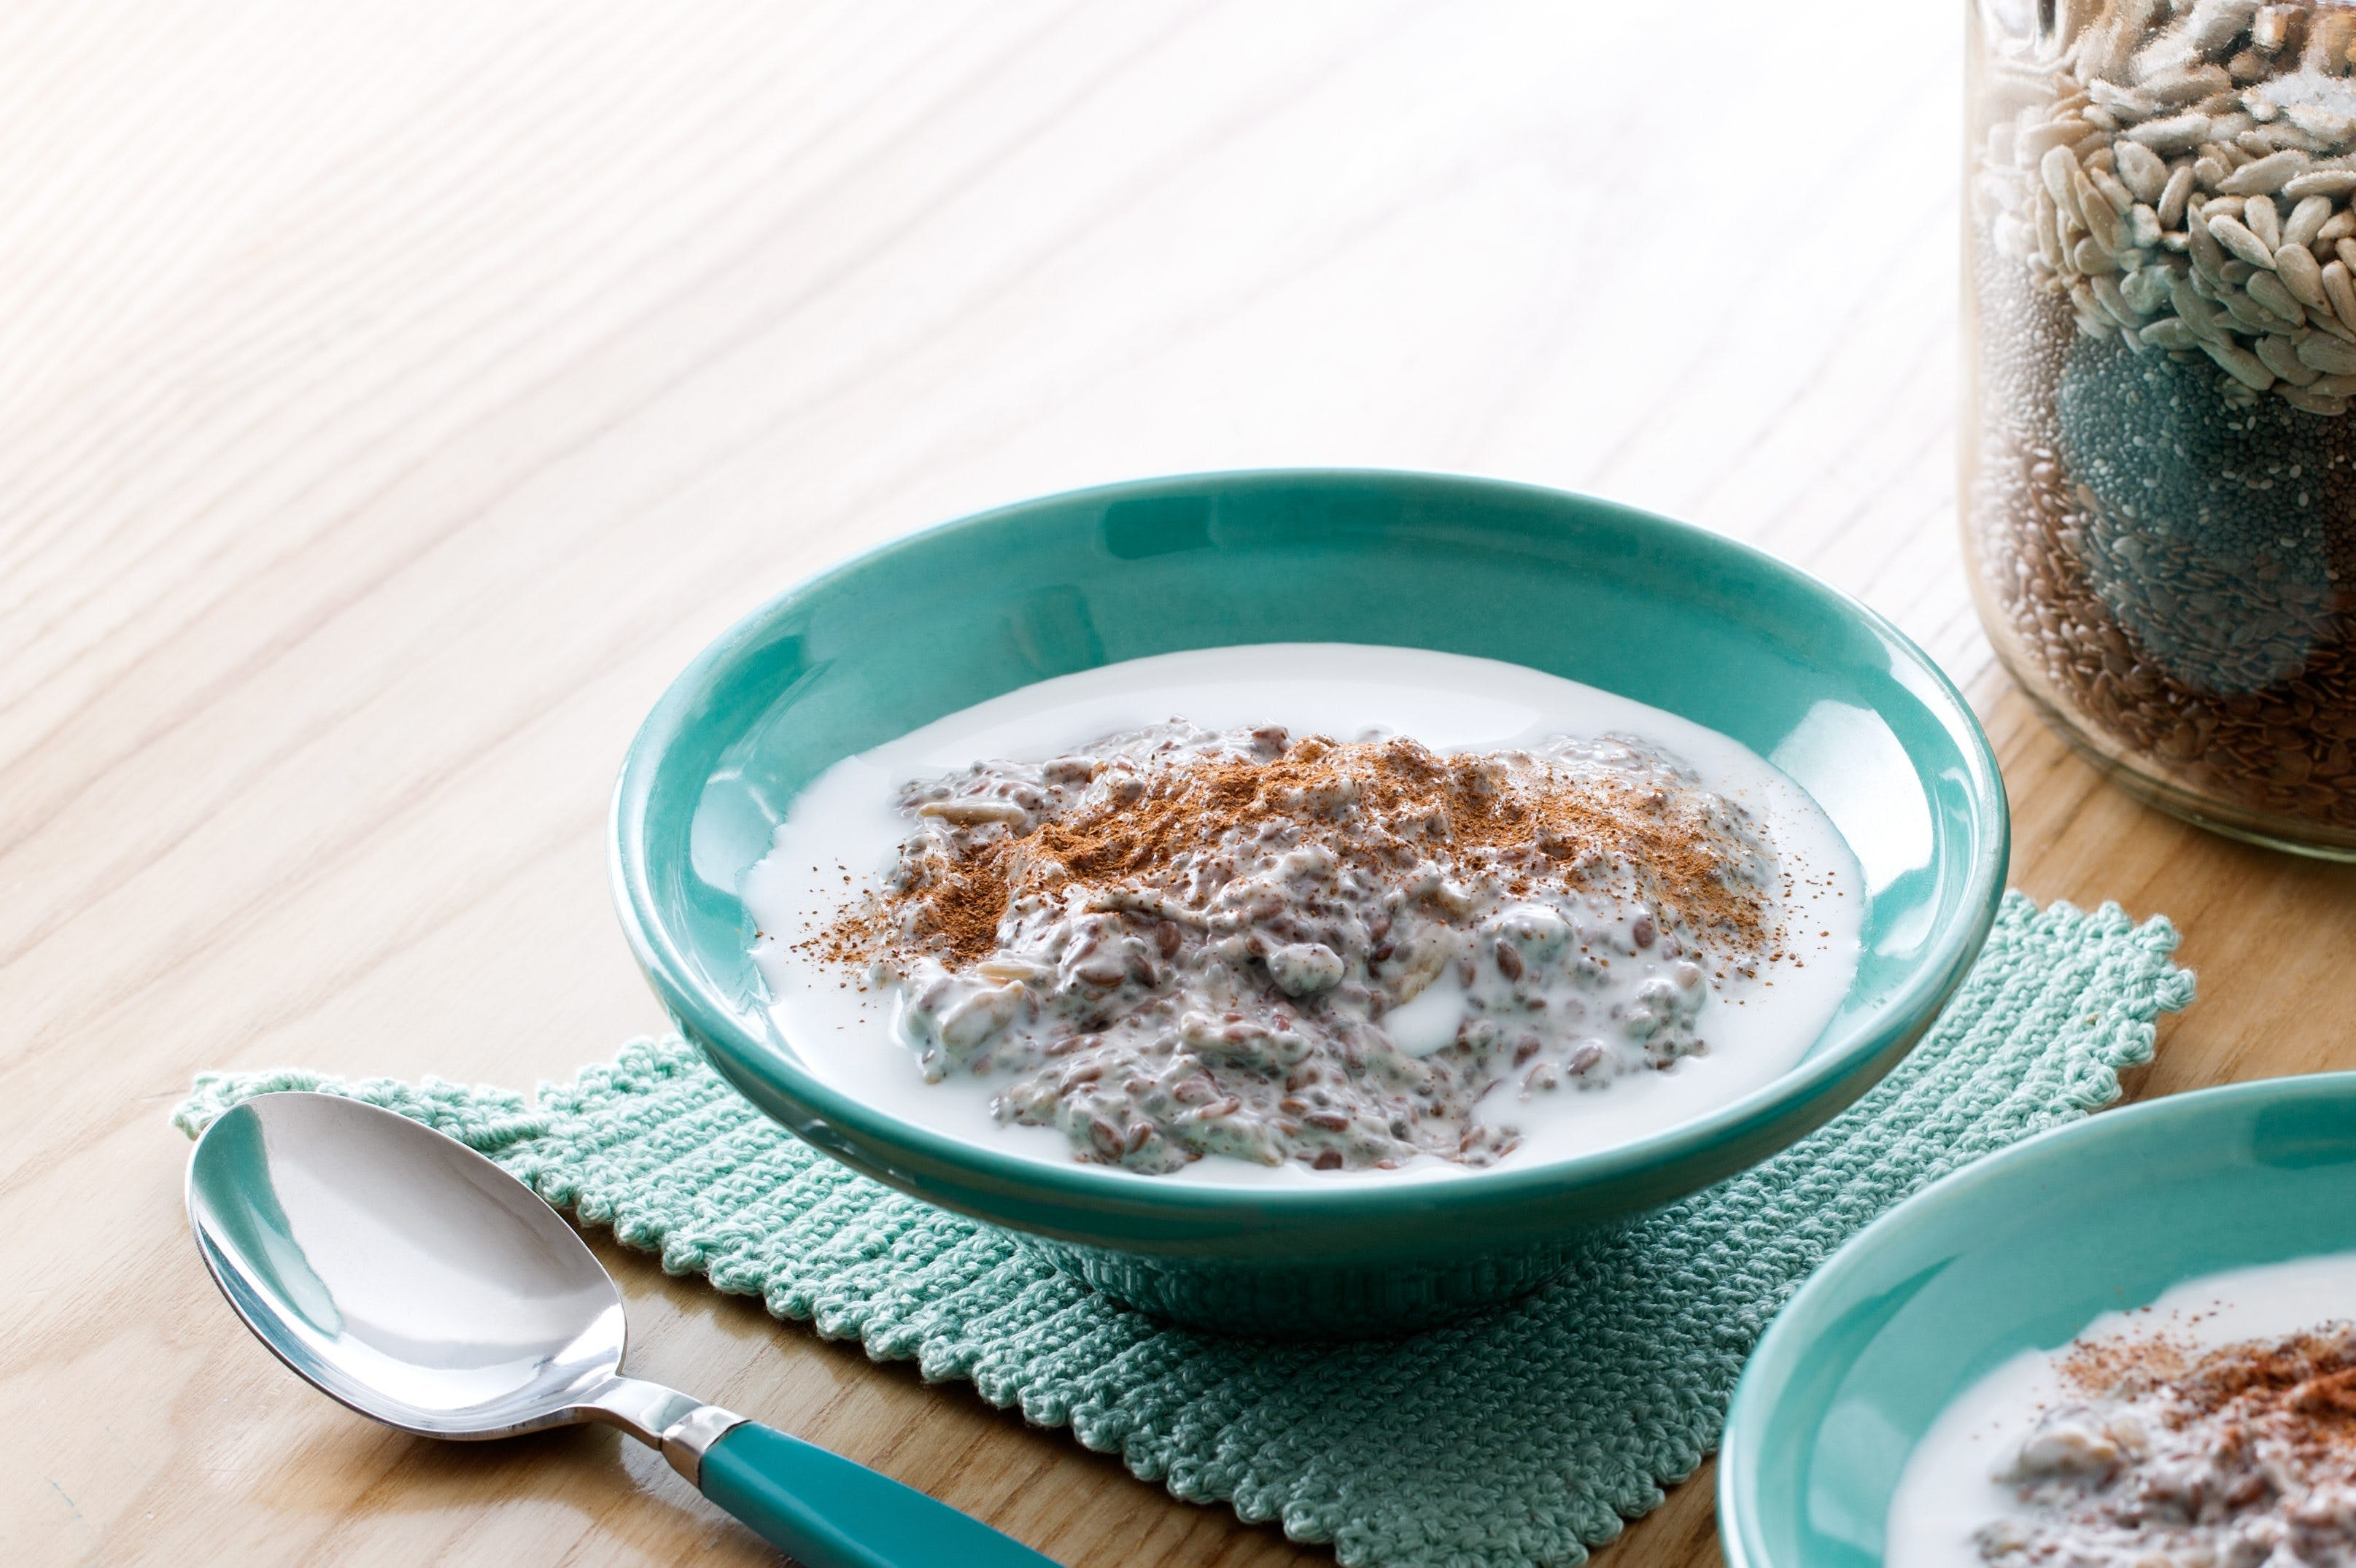 Judy's fabulous low-carb oatmeal